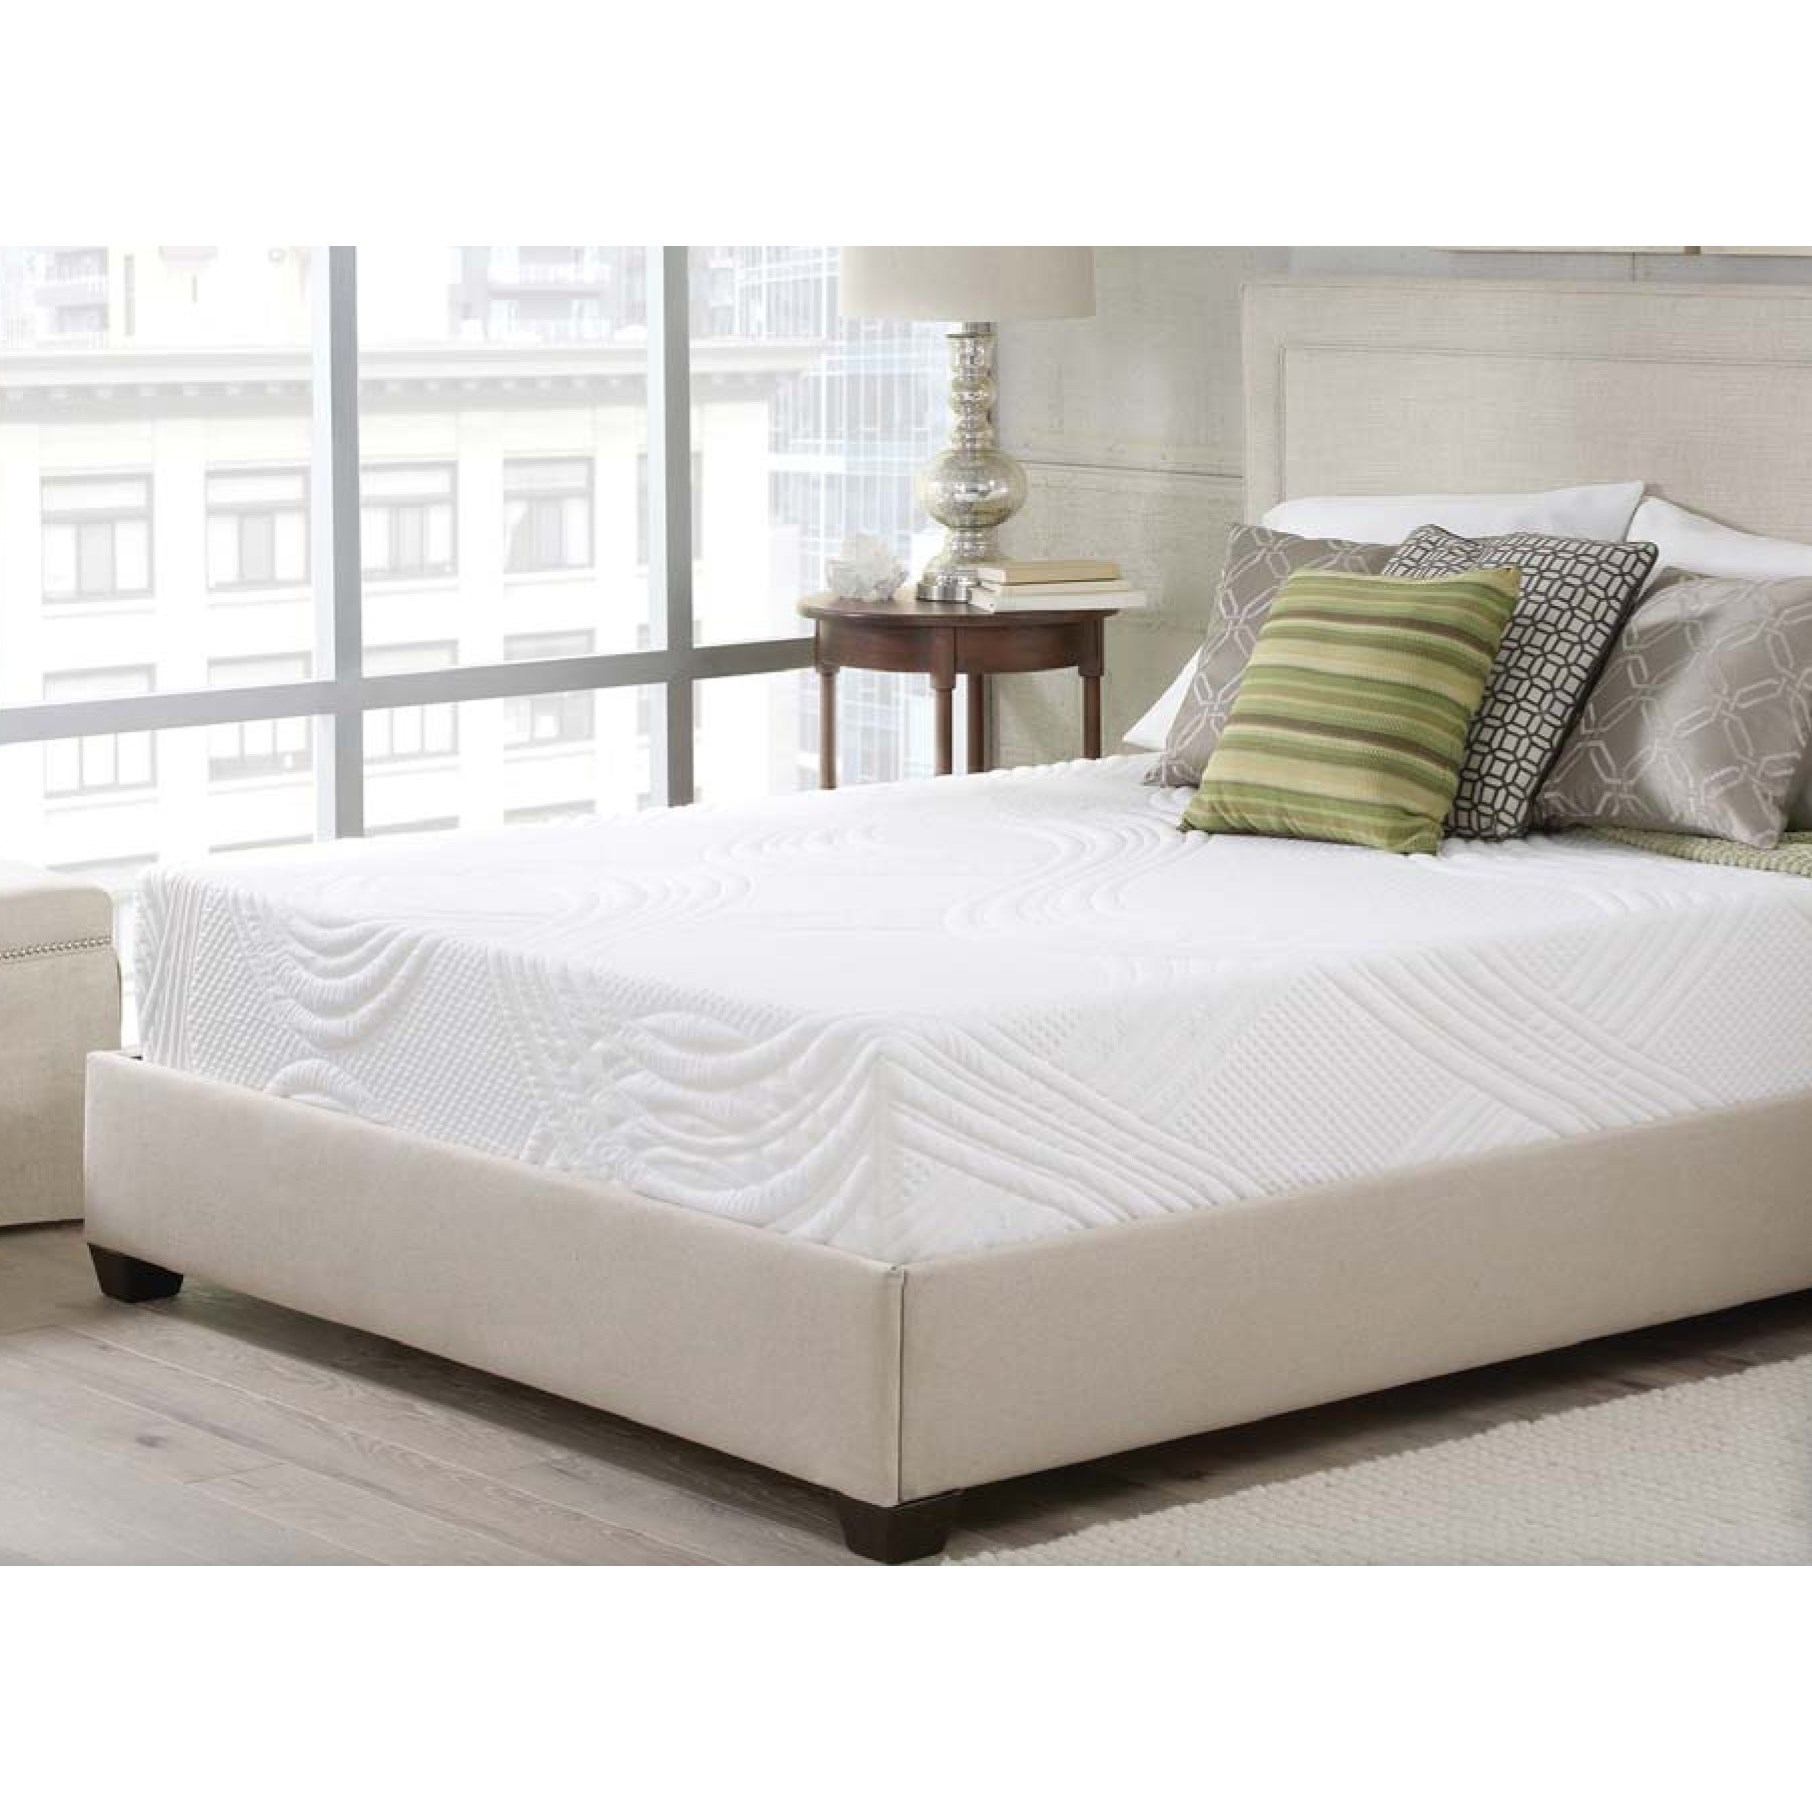 "Corsicana Luxen Bed In A Box Queen 10"" Memory Foam"